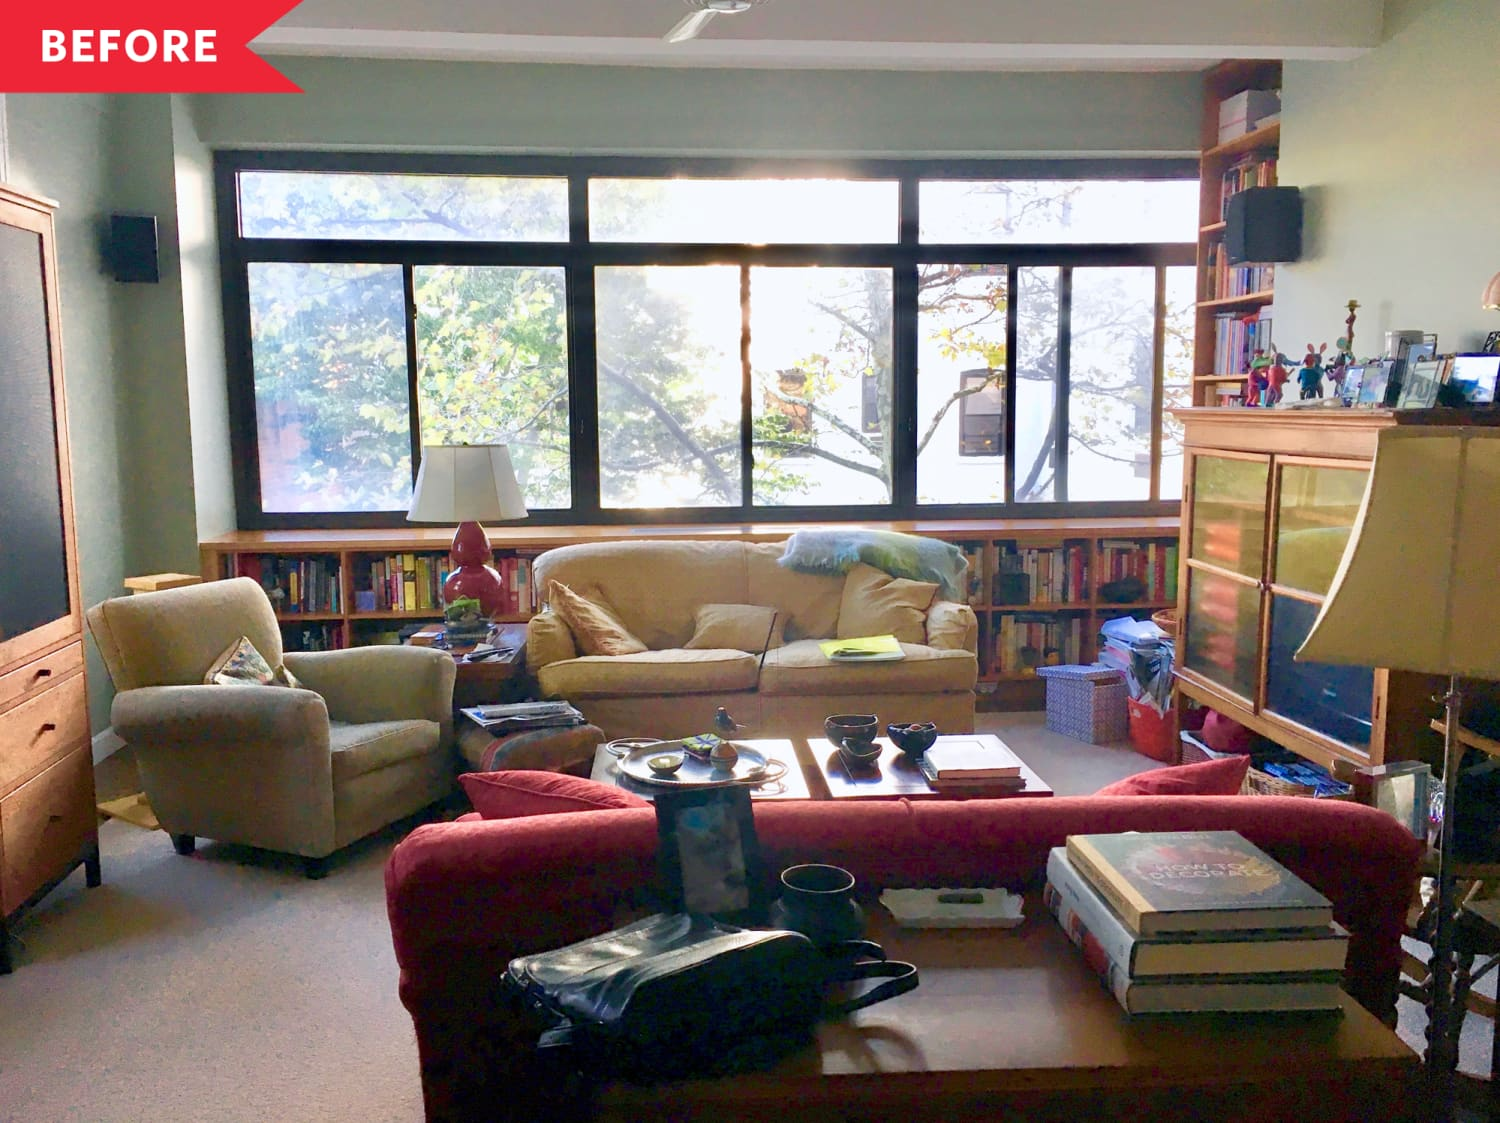 Before & After: A Brooklyn Apartment Proves that Family Heirlooms and Decluttering Can Coexist